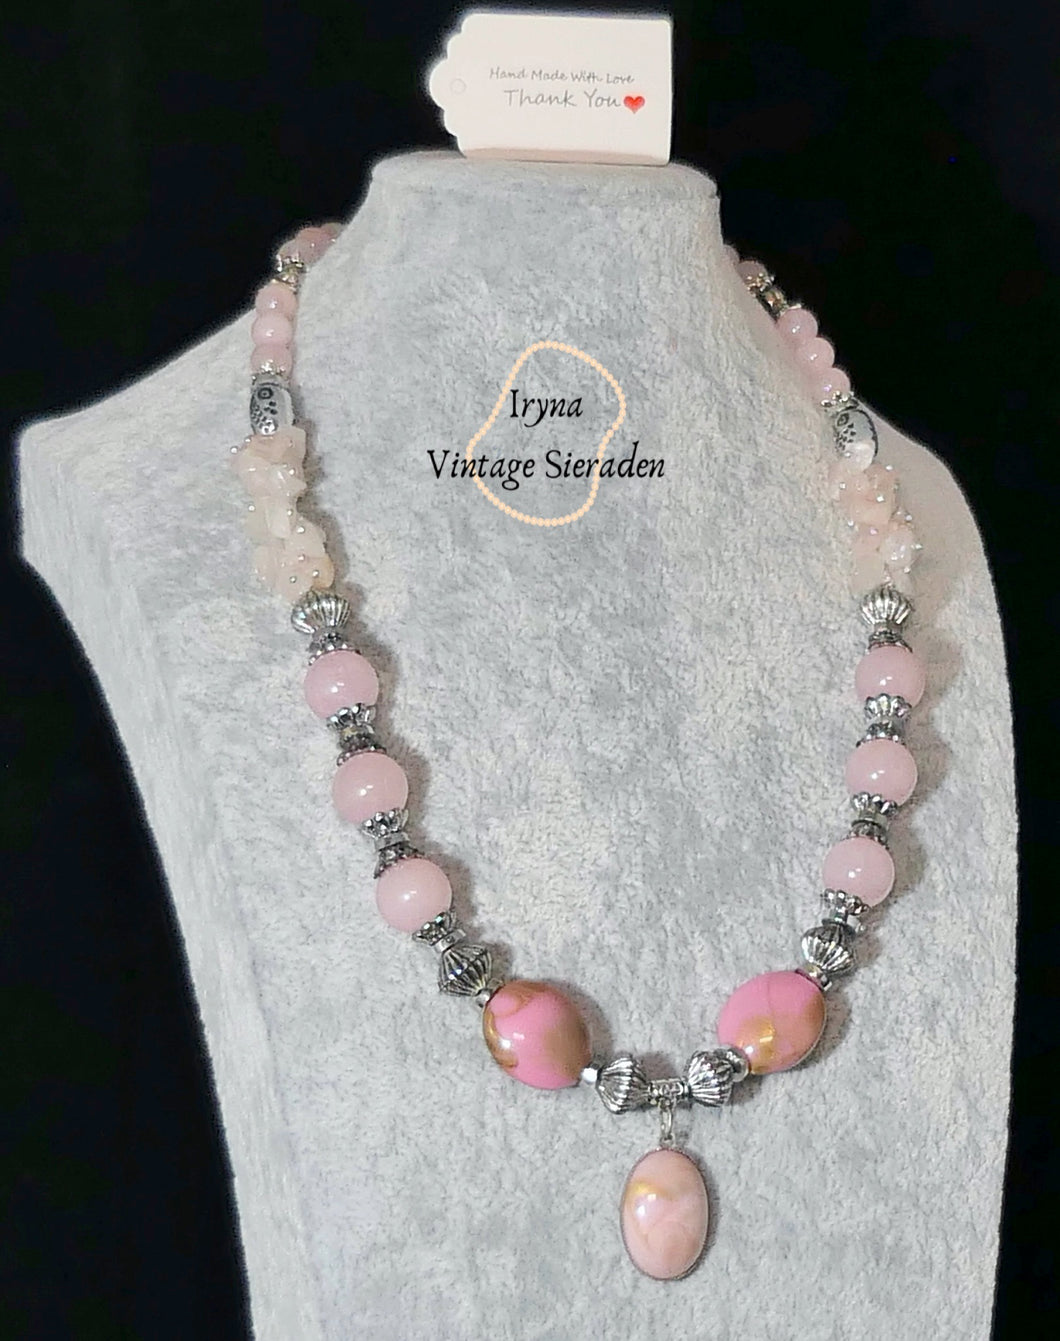 Necklace with Pendant with Gemstone-Pink Quartz